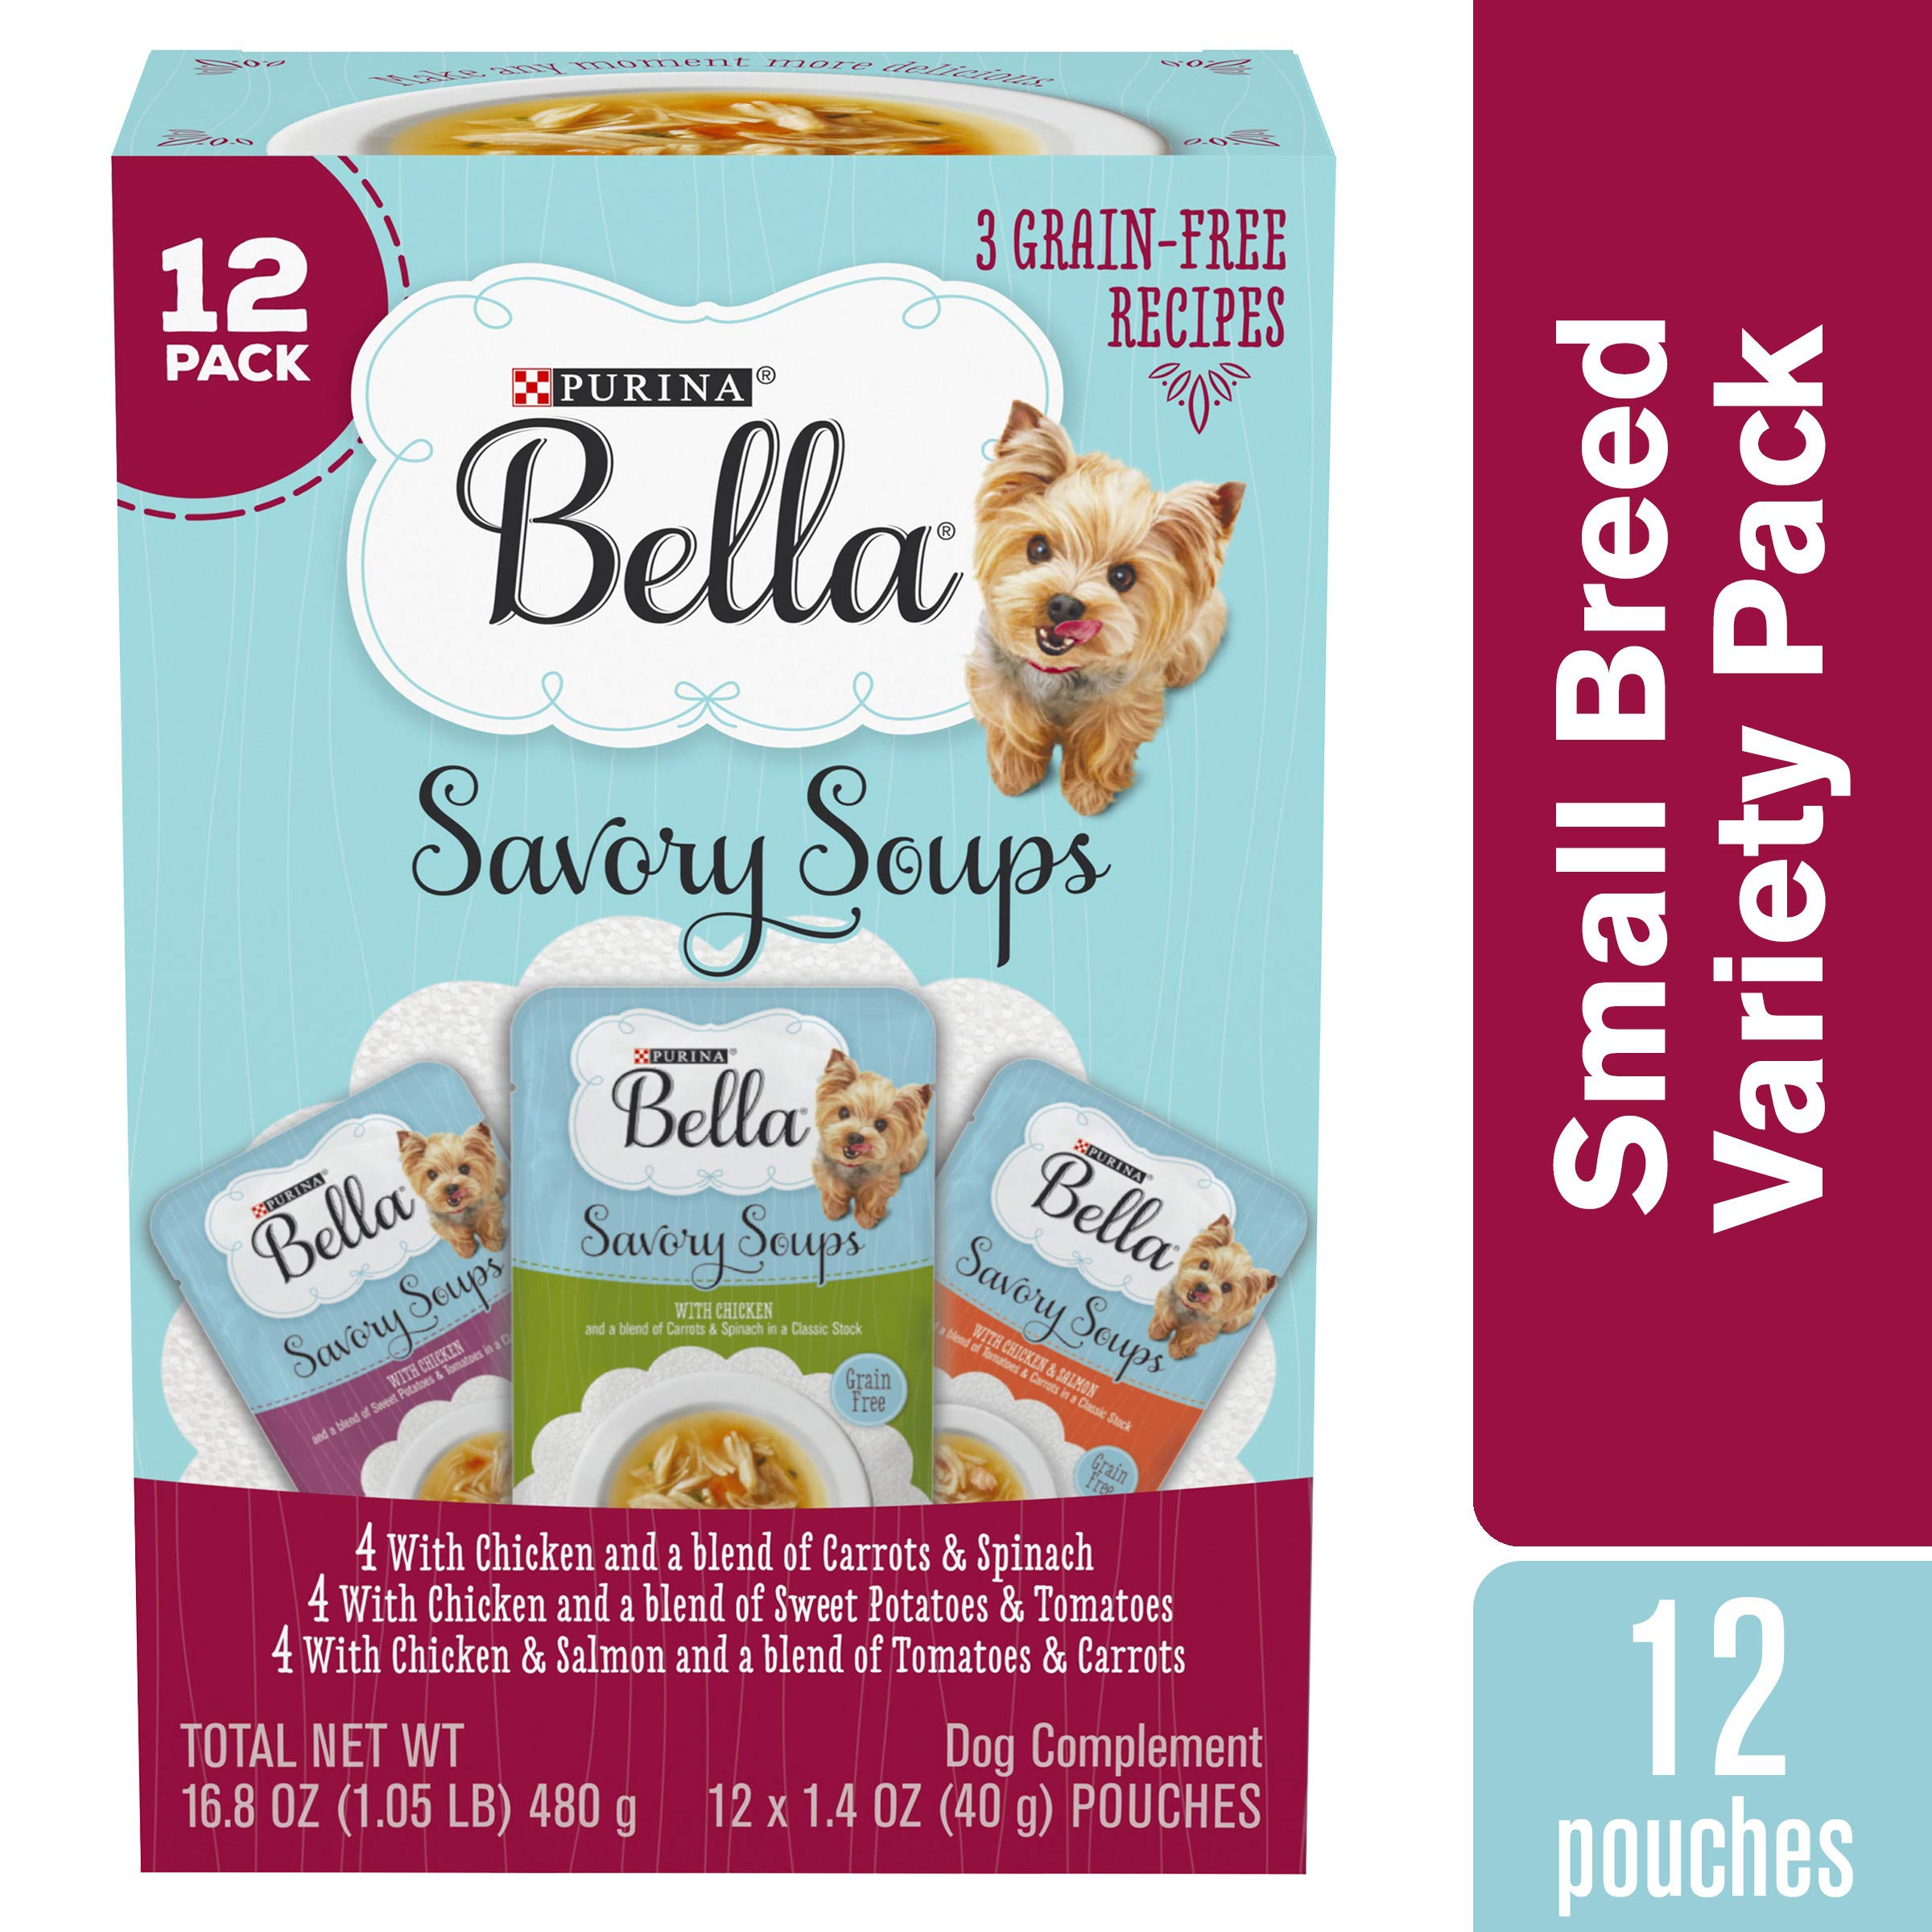 Purina Bella Grain Free Small Breed Wet Dog Food Complement Variety Pack, Savory Soups - (12) 1.4 oz. Pouches by Purina Bella